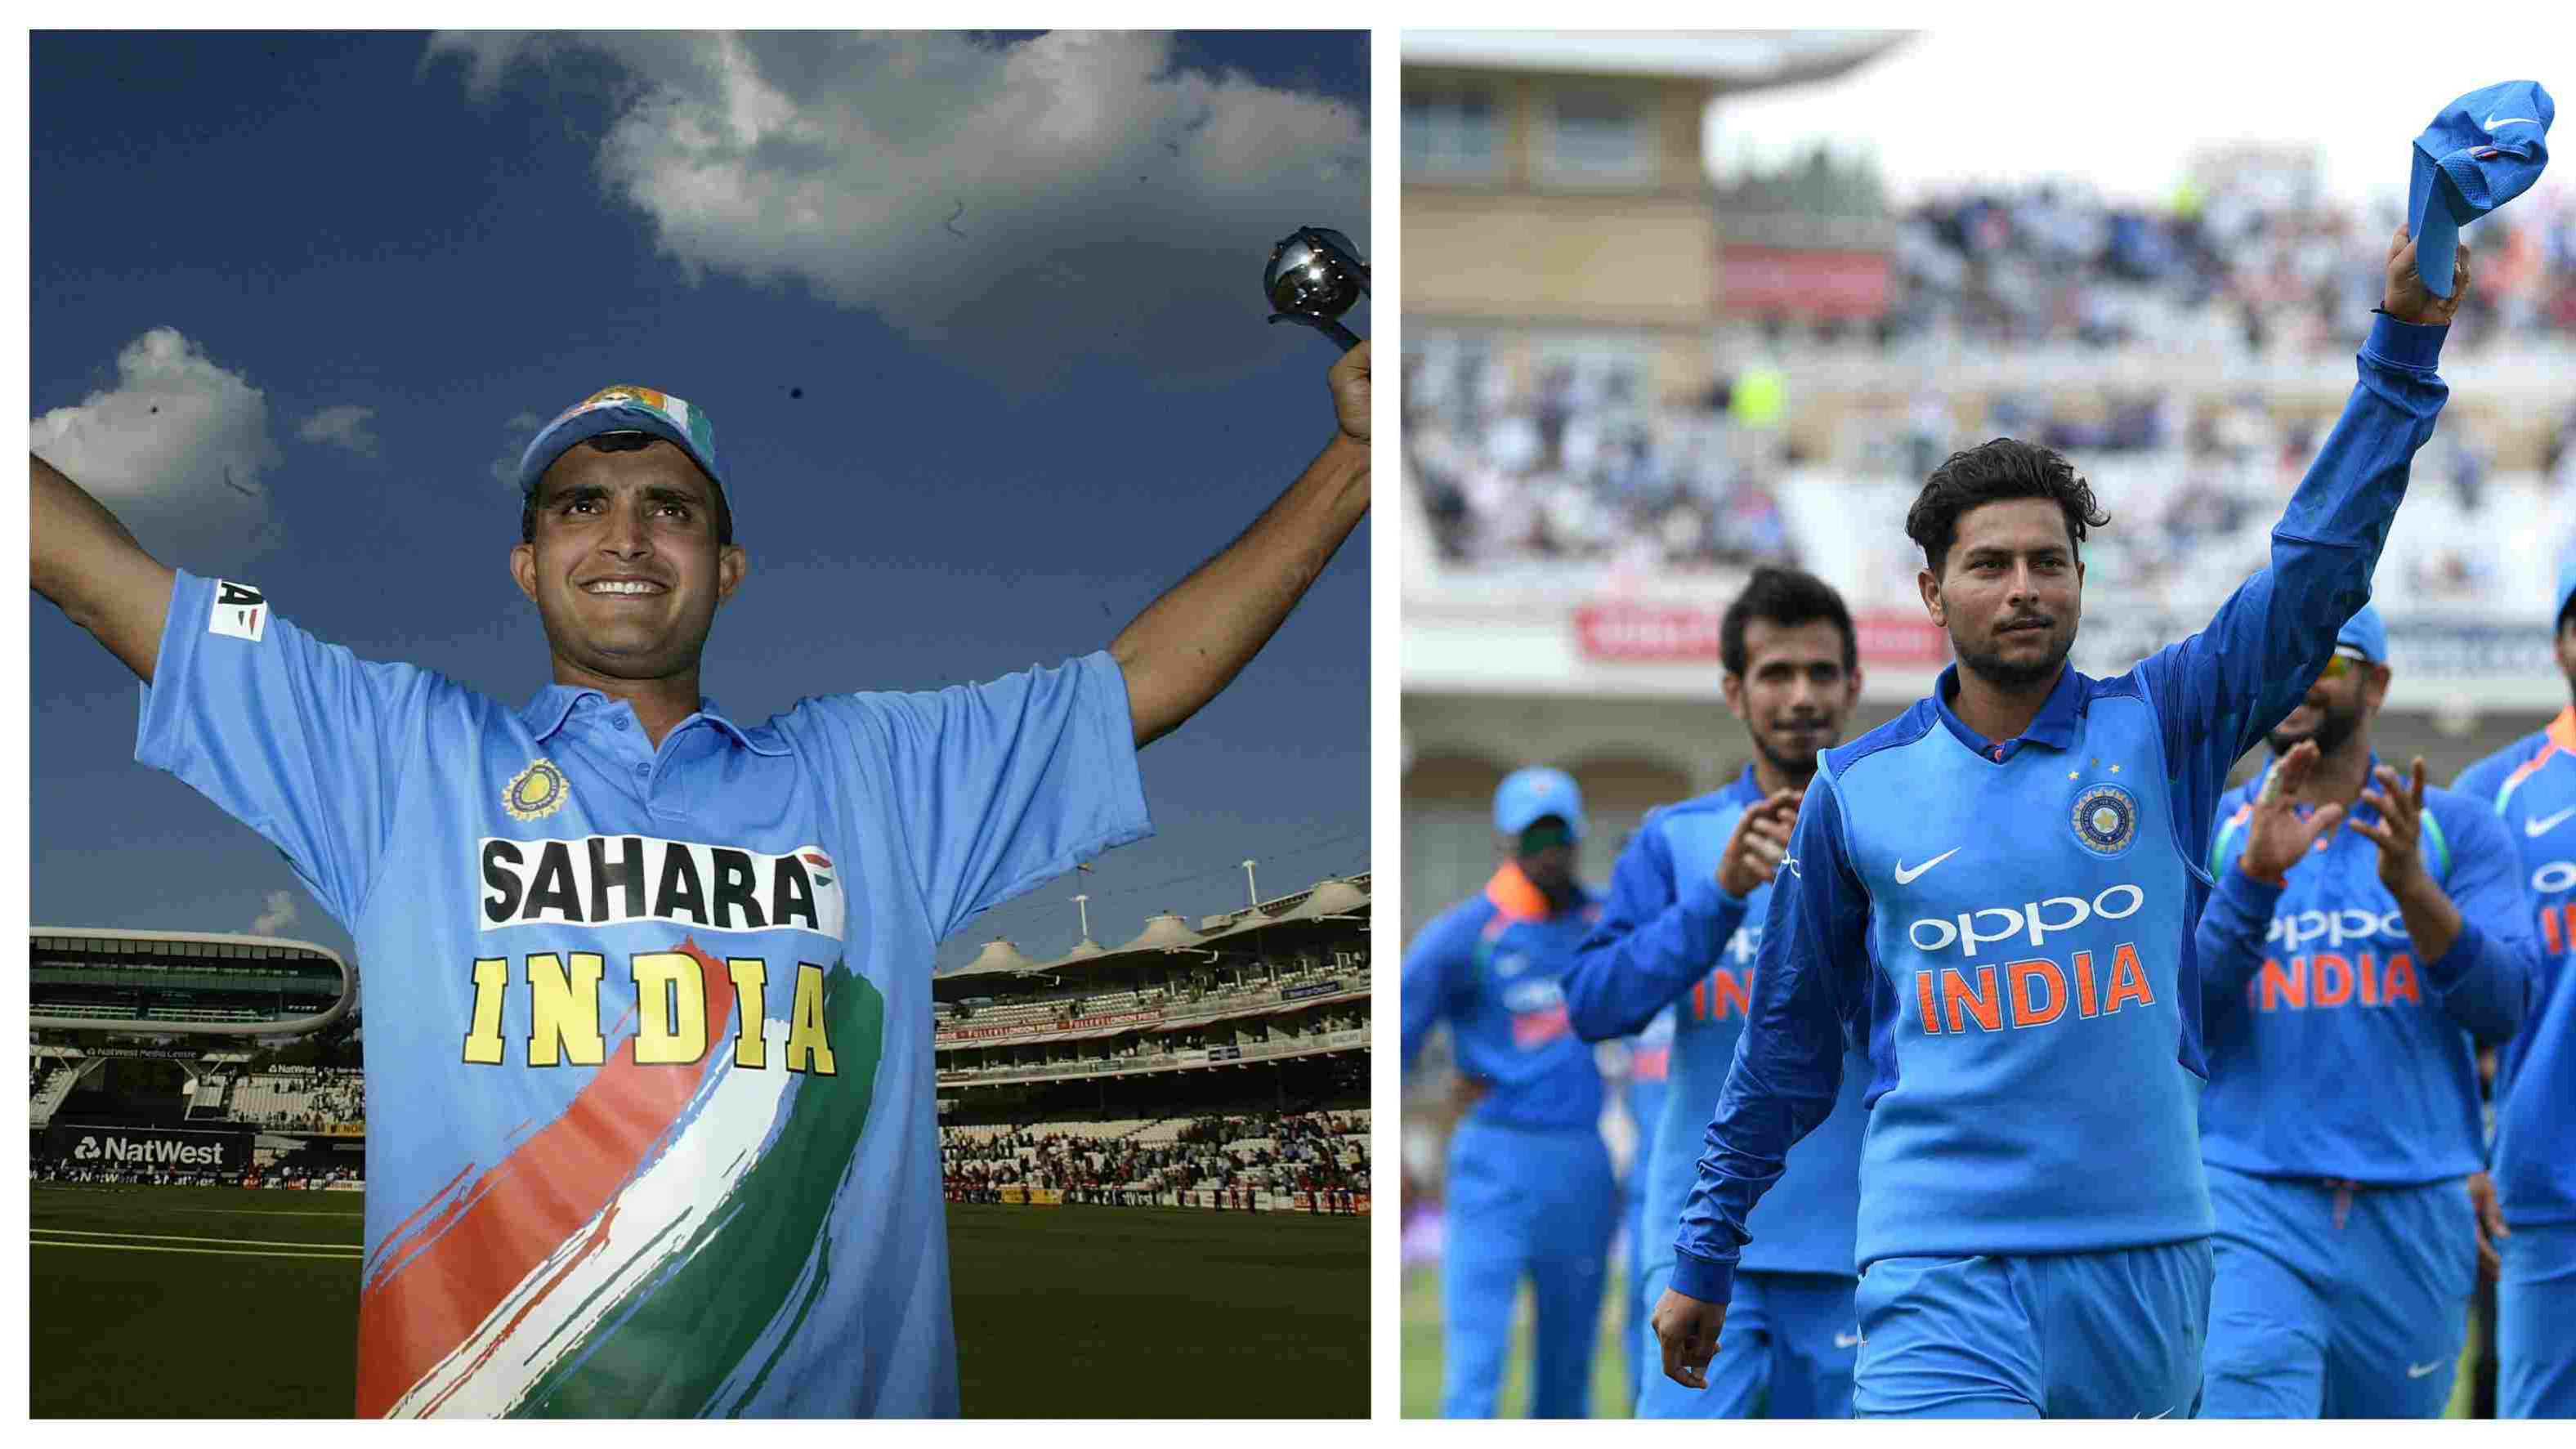 ENG v IND 2018: India will replicate the feat of Natwest 2002 at Lord's, says Sourav Ganguly